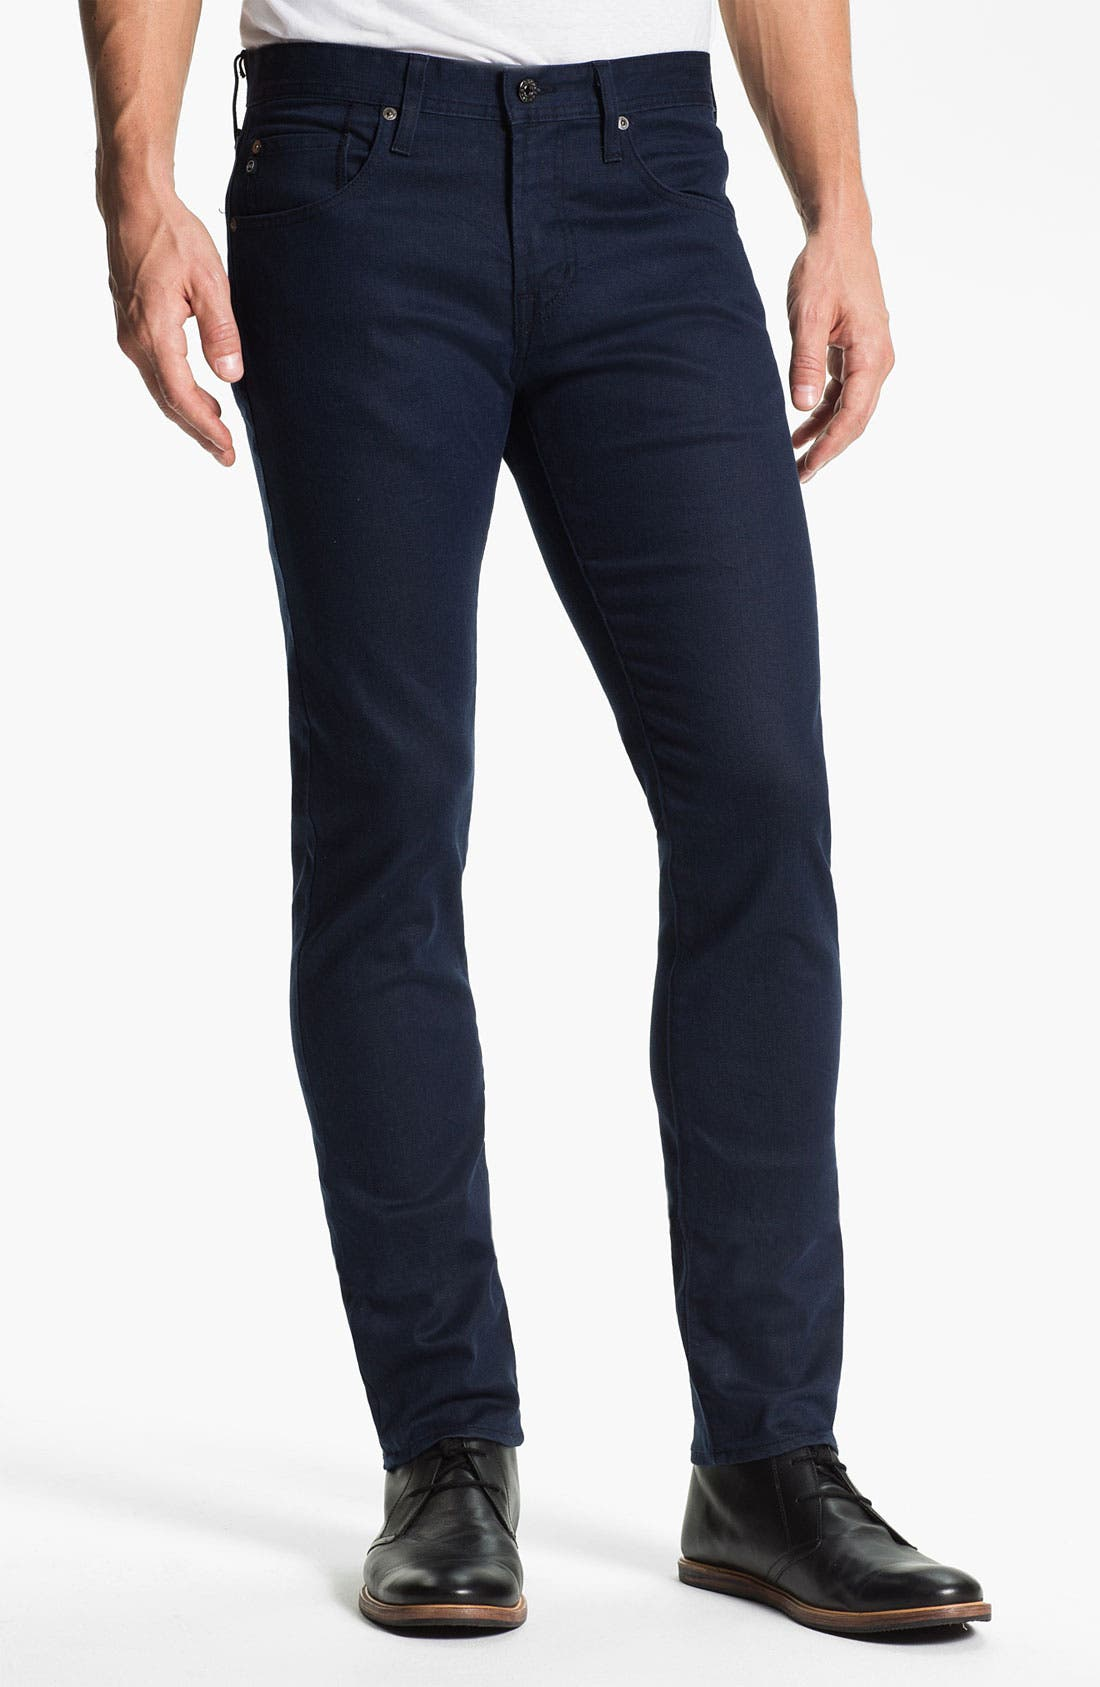 Alternate Image 1 Selected - AG 'Dylan' Skinny Fit Jeans (Perry) (Online Only)